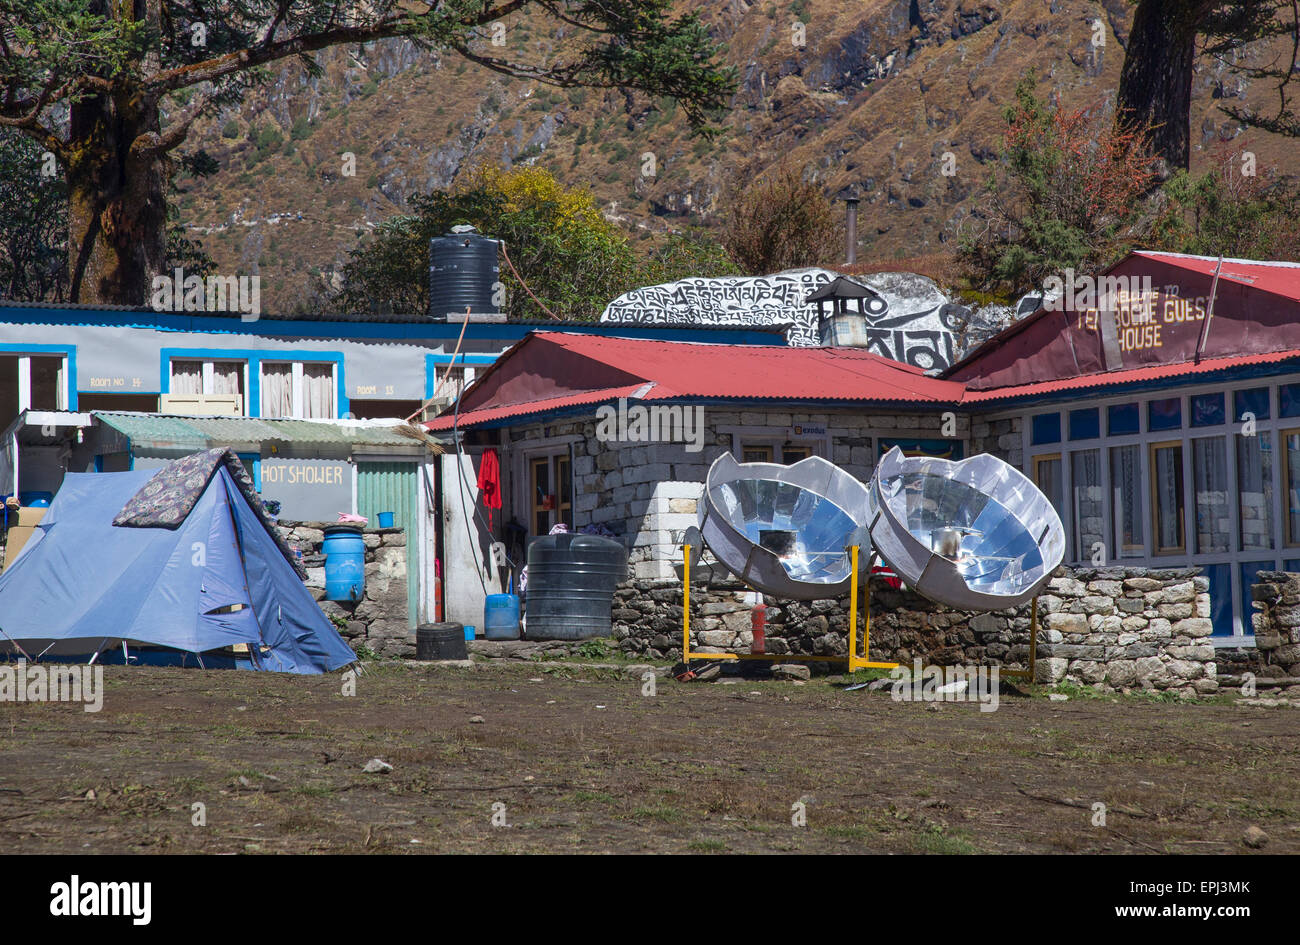 Two solar cookers outside trekking lodges at the monastery in Tengboche, Everest Region Nepal - Stock Image